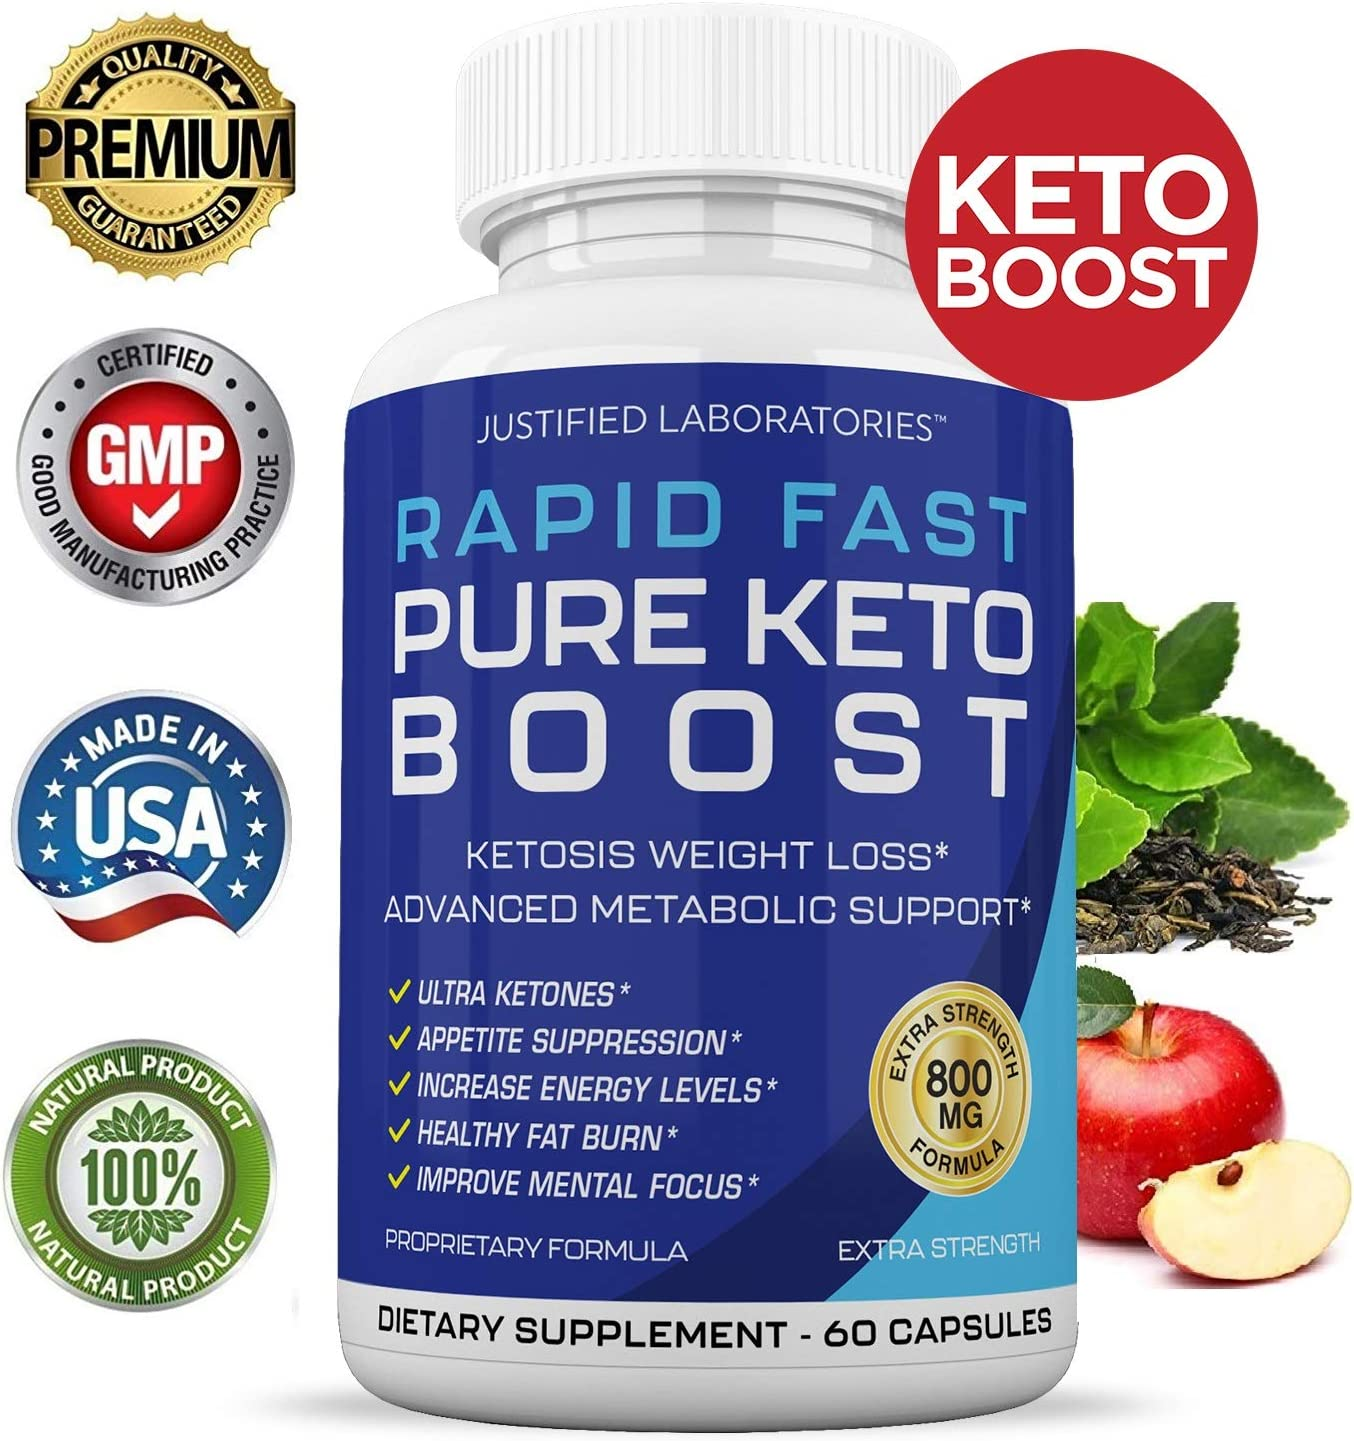 Rapid Boost Keto Review | Rapid Boost Keto Diet Pills Legit Or Scam?